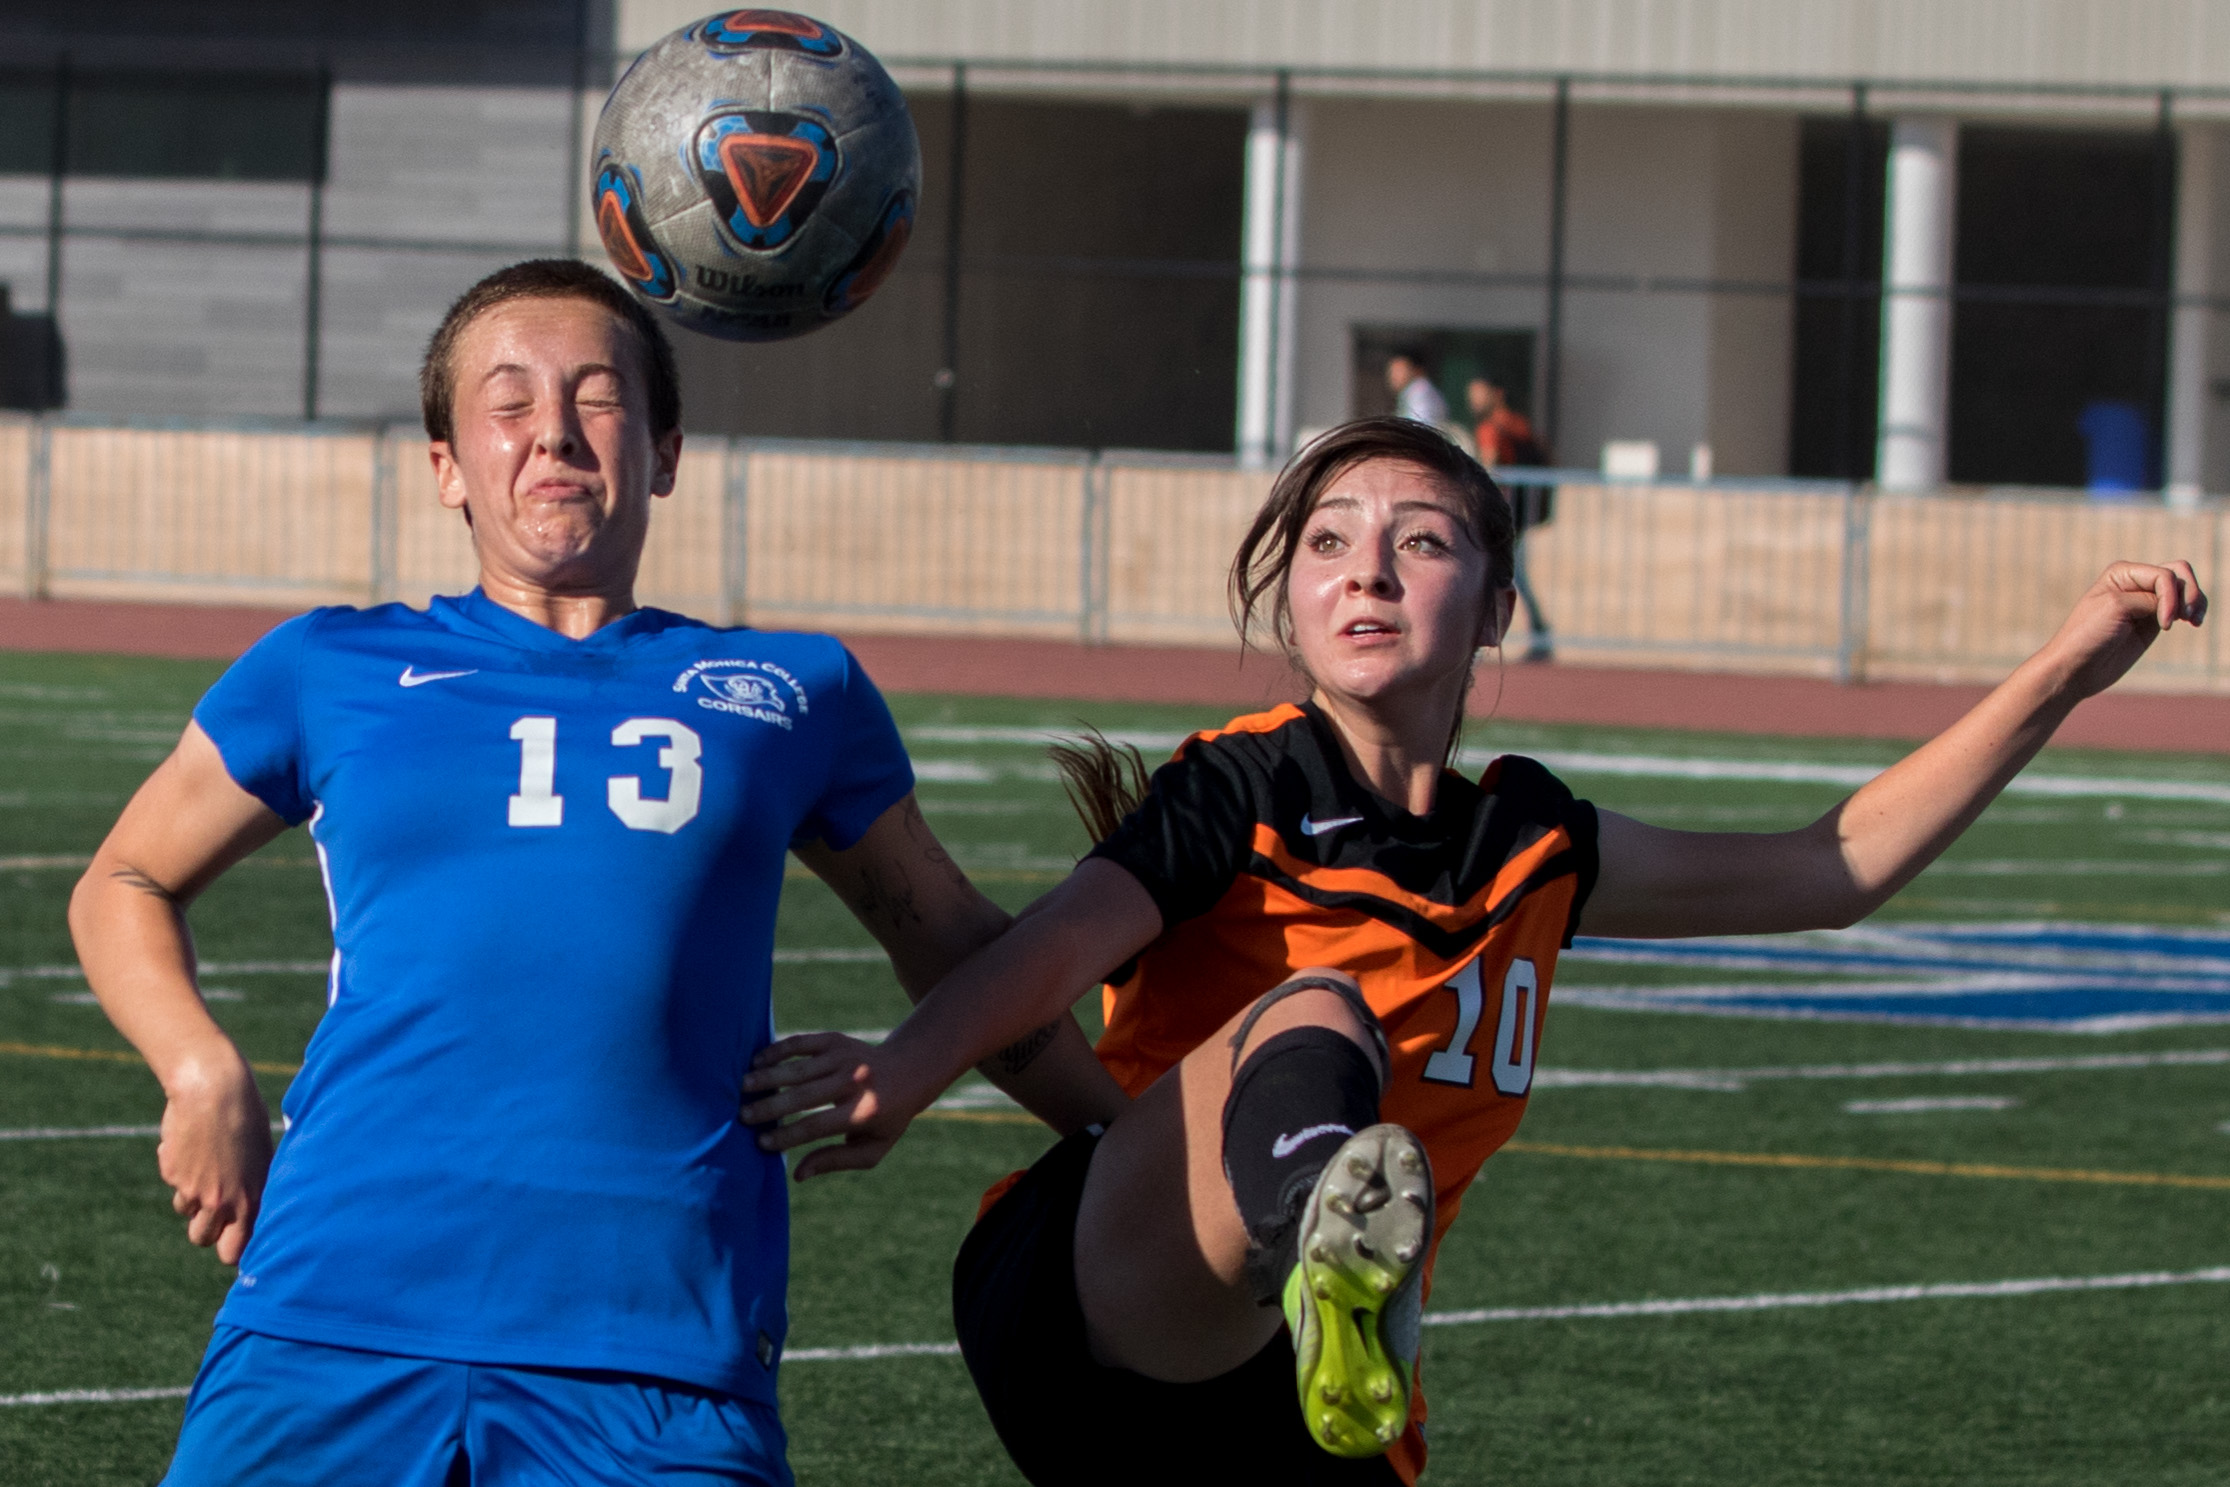 Santa Monica College Corsairs sophomore defender Chloe Glueck (13, left) and Ventura College Pirates sophomore forward Valeria Ramirez (10, right) battle for control of the airborne ball. The Corsairs were able to come out with a 2-1 victory at the Corsair Field located on Santa Monica Colleges Main Campus in Santa Monica California on September 26, 2017. (Photo By: Zane Meyer-Thornton)